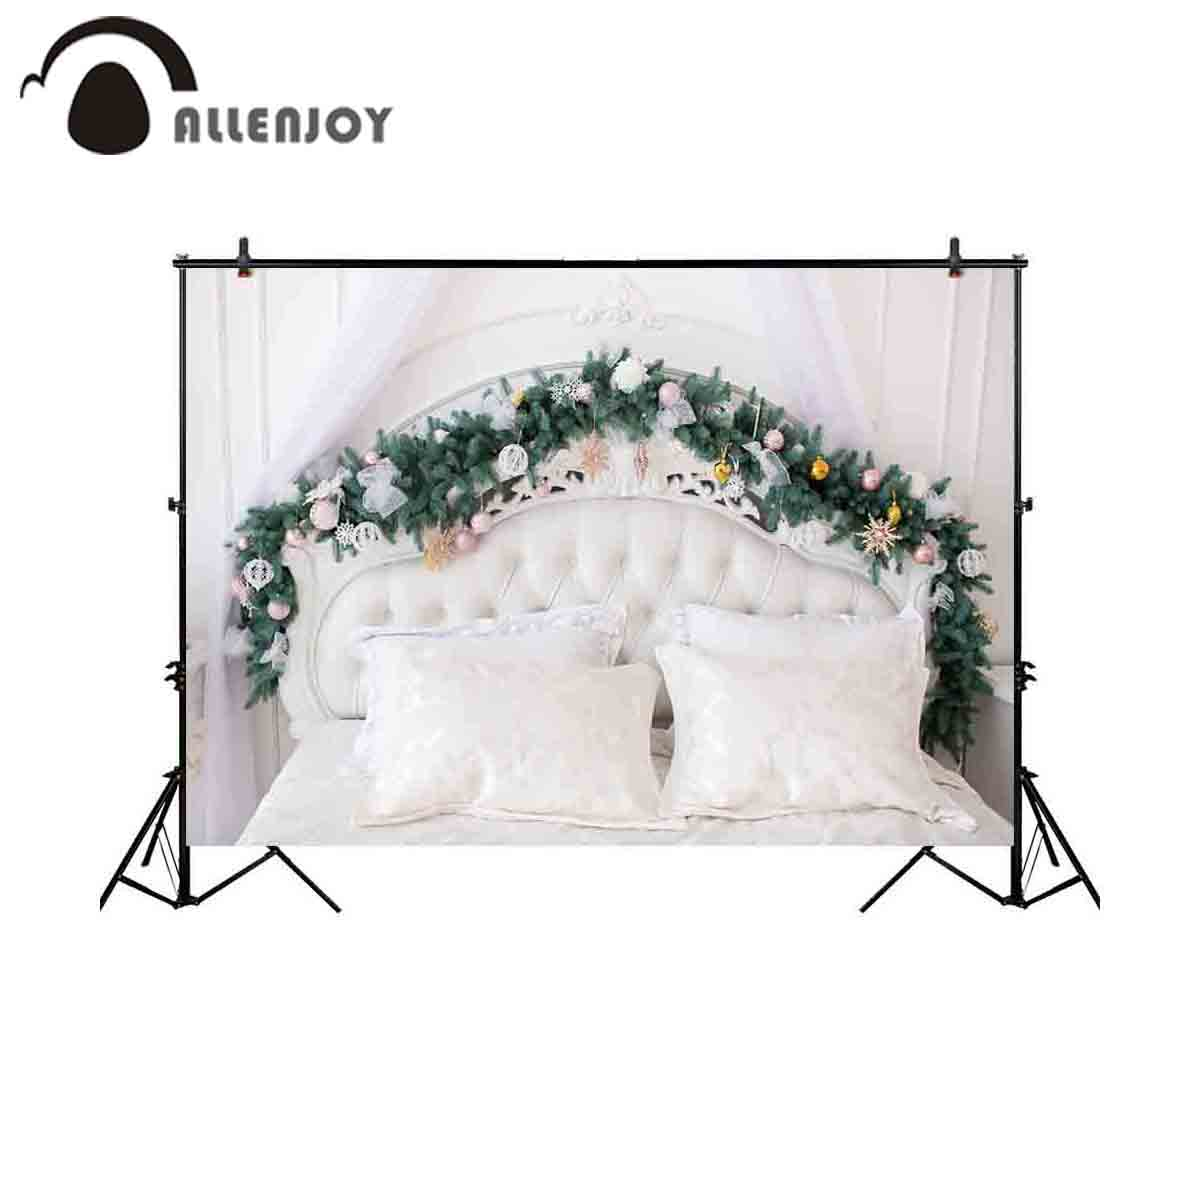 Allenjoy photography background Christmas headboard tufted pine tree leaf backdrop photocall photo studio photobooth fabric free shipping 2 pcs sbr25 1000mm linear bearing supported rails 4 pcs sbr25uu bearing blocks sbr25 length 1000mm for cnc parts